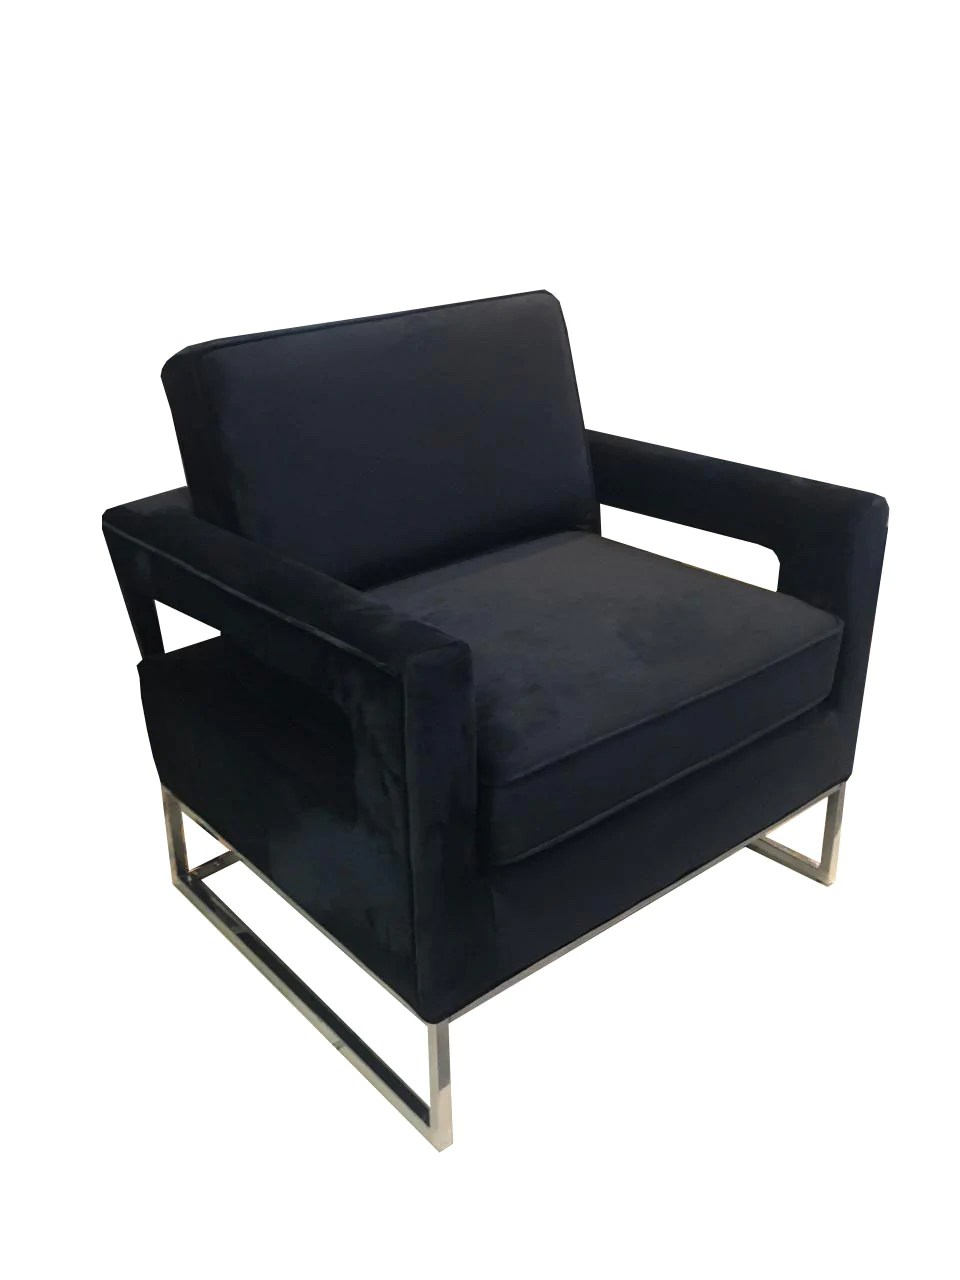 Black Accent Chairs Meridian Furniture Black Accent Chair